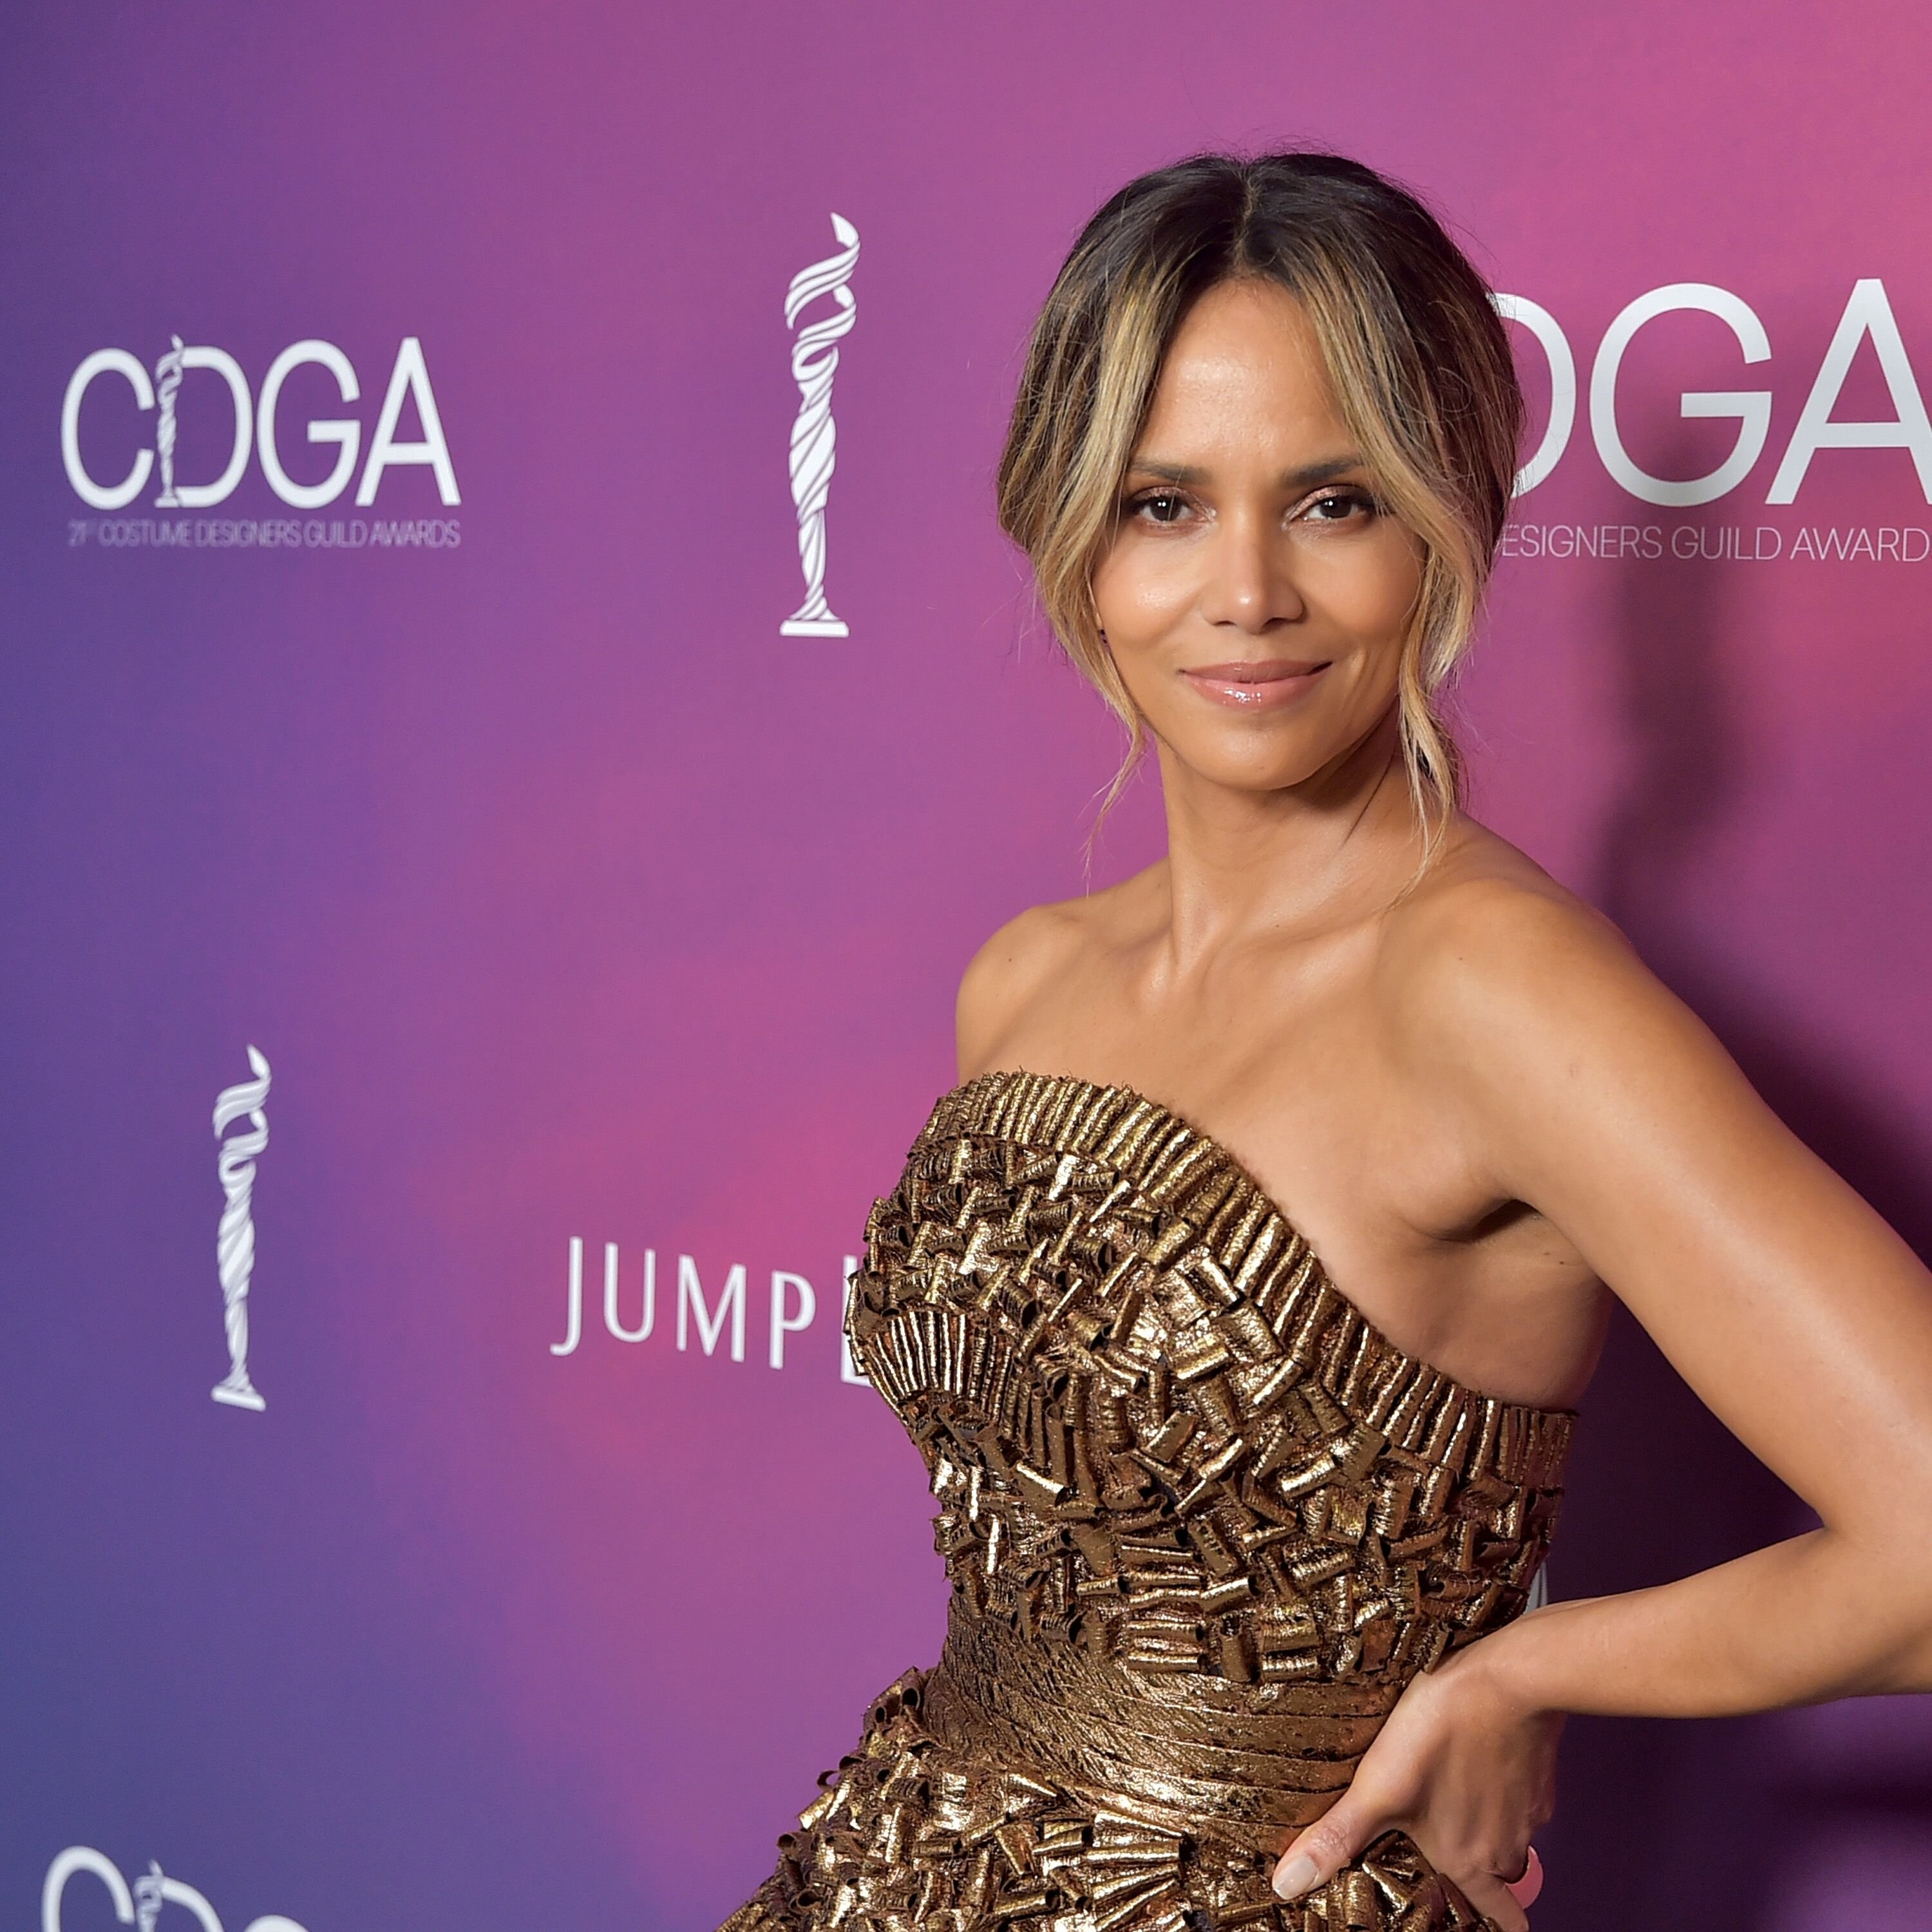 Halle Berry at The 21st CDGA (Costume Designers Guild Awards) on Feb. 19, 2019 in California | Source: Getty Images